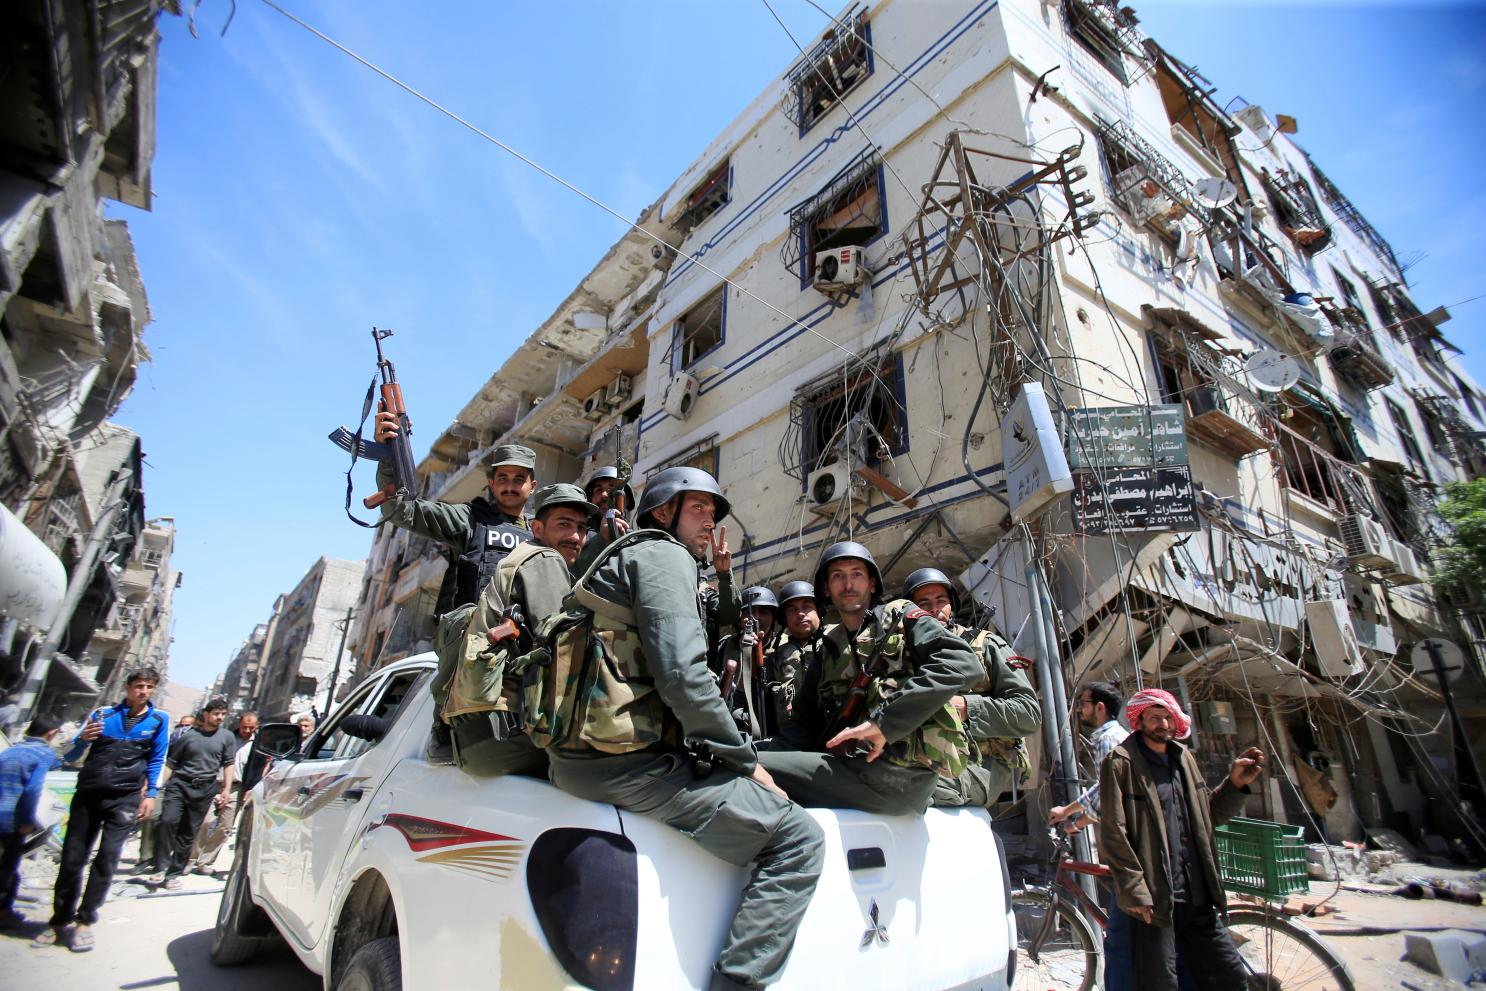 When Will Trump Bring Home U.S. Forces from Syria?